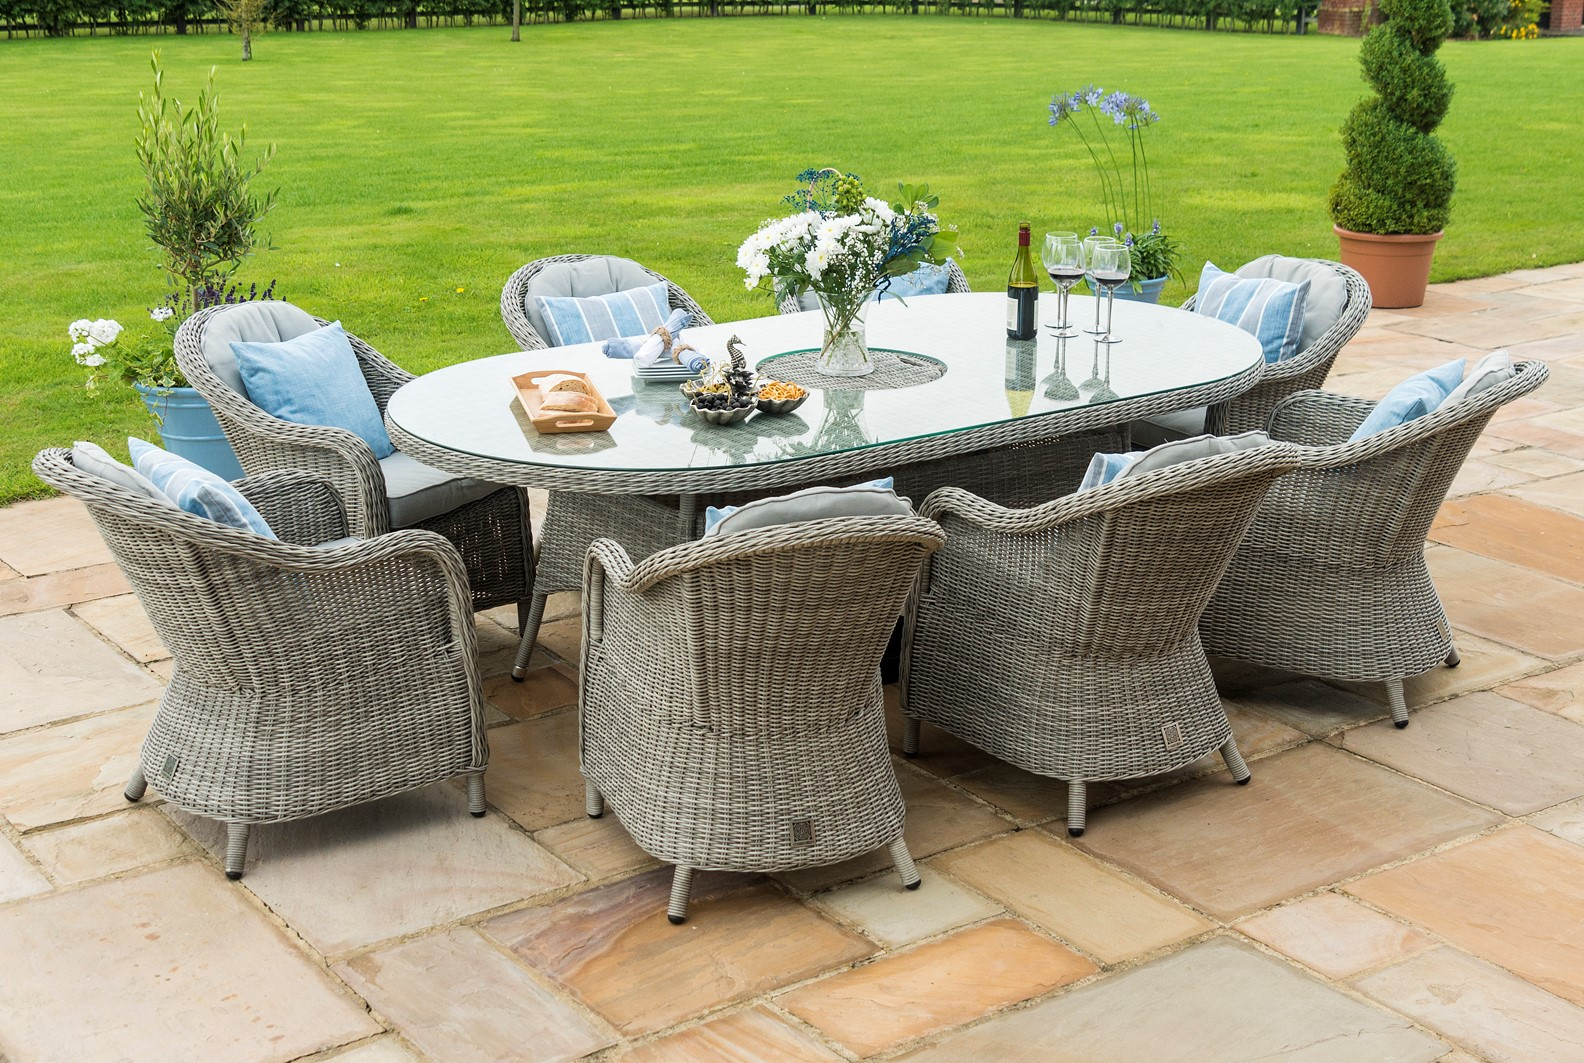 Maze Rattan 8 Seat Oval Garden Furniture Set With Ice Bucket and Lazy Susan